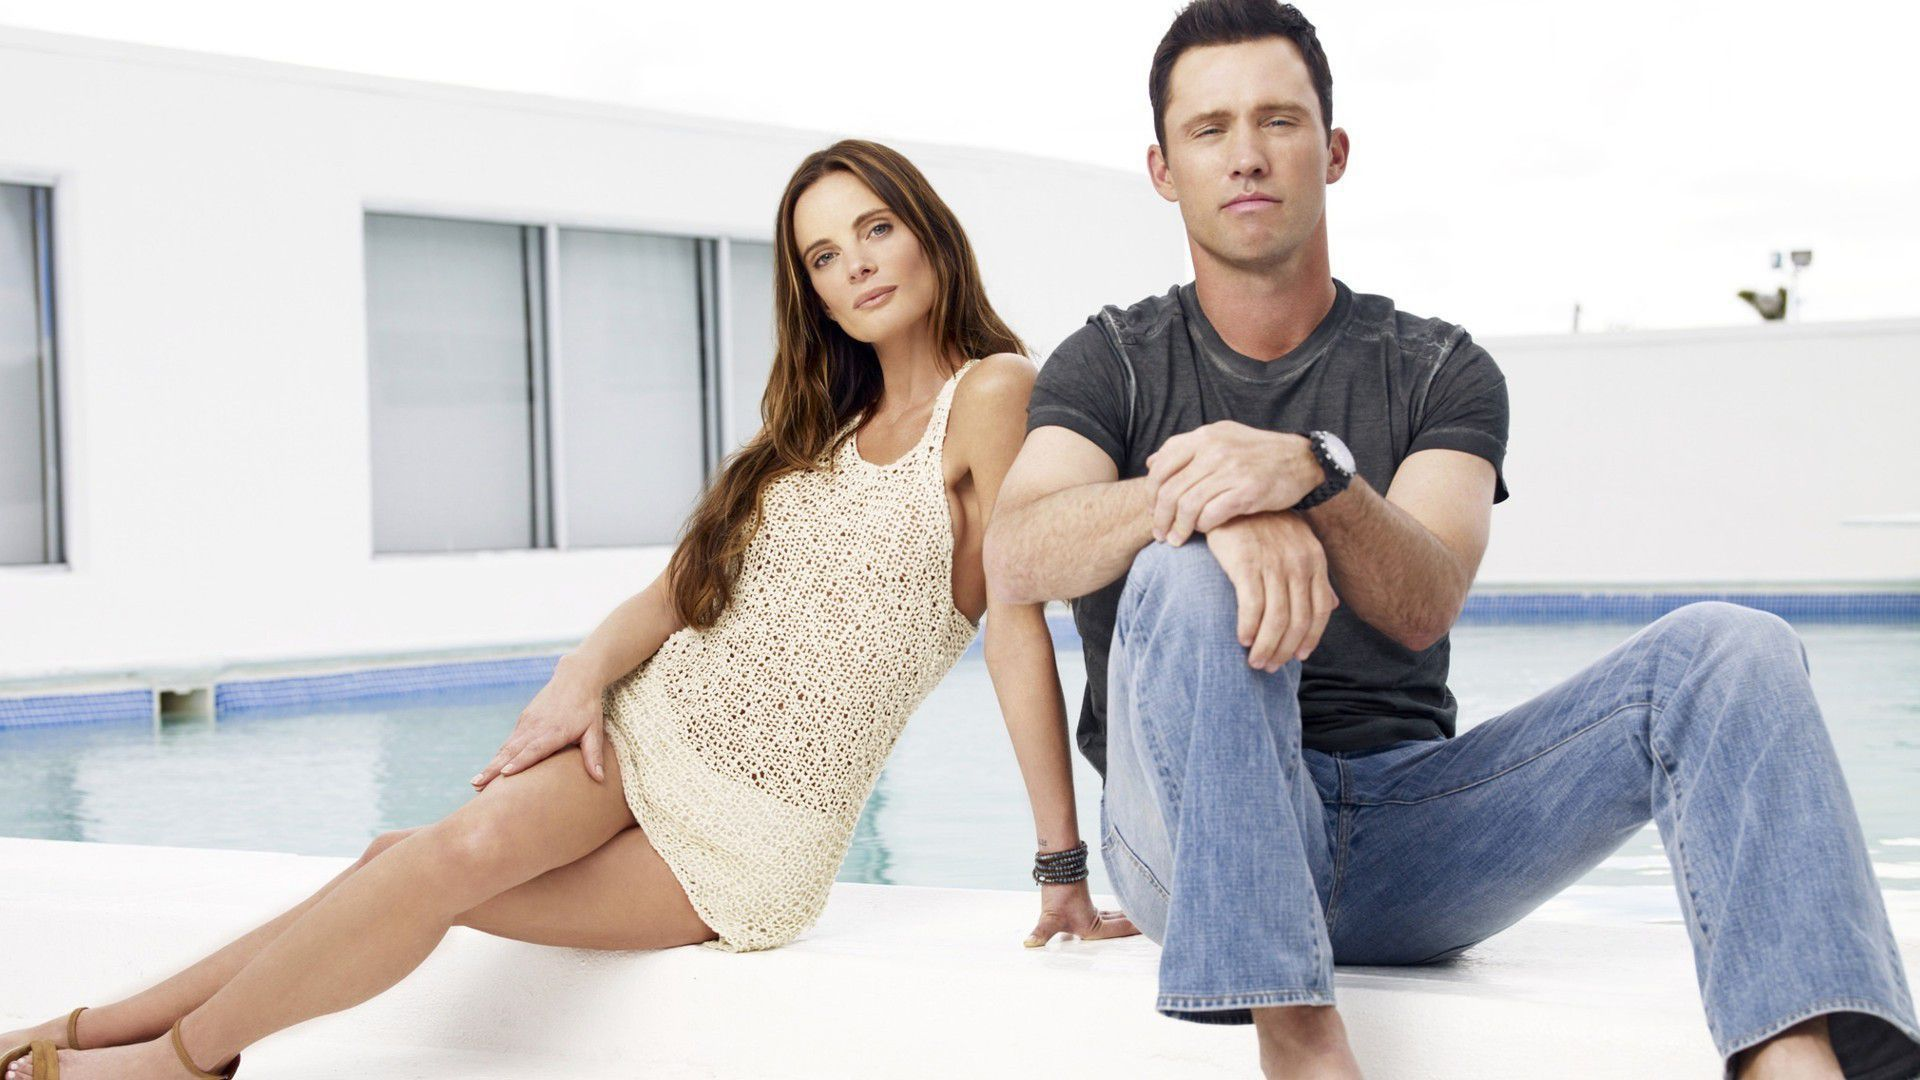 Burn Notice HD Wallpaper